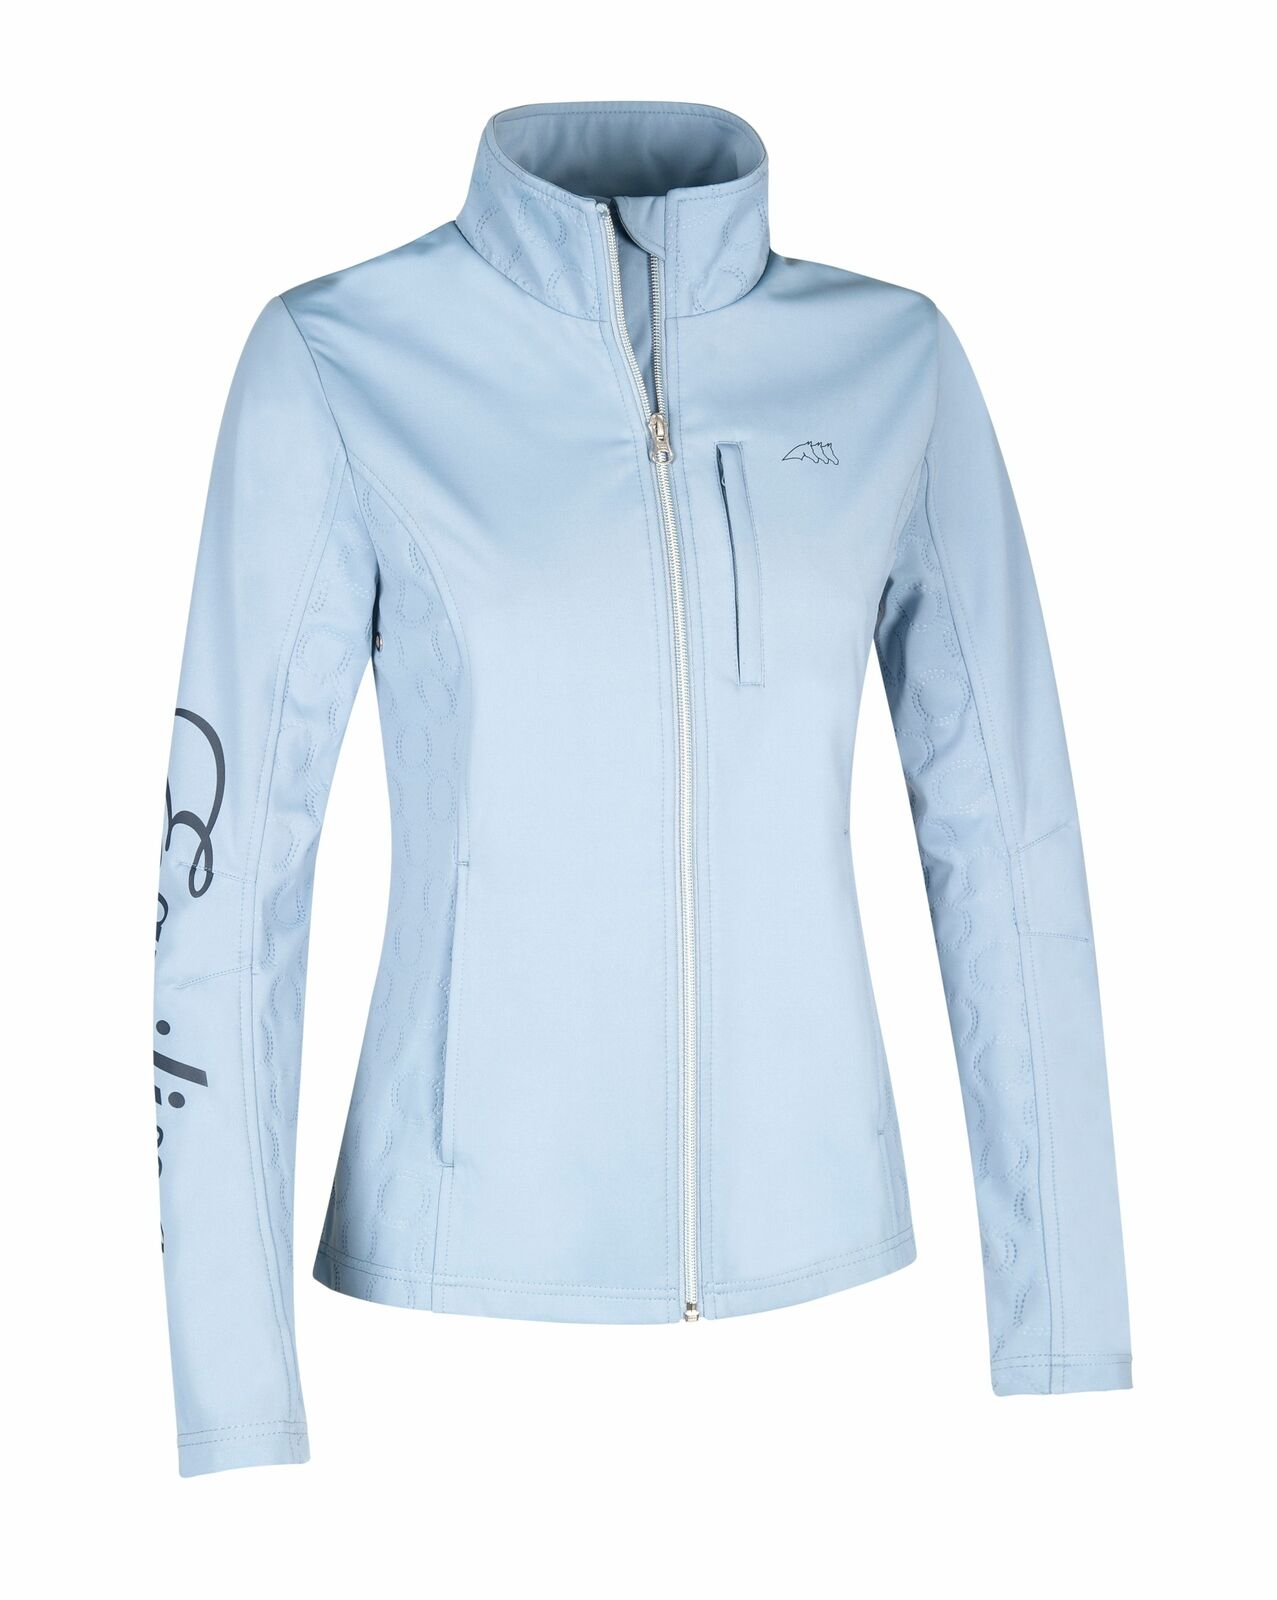 EQUILINE Miele Wouomo Soft Shell JKT AZZURRO SS 2019